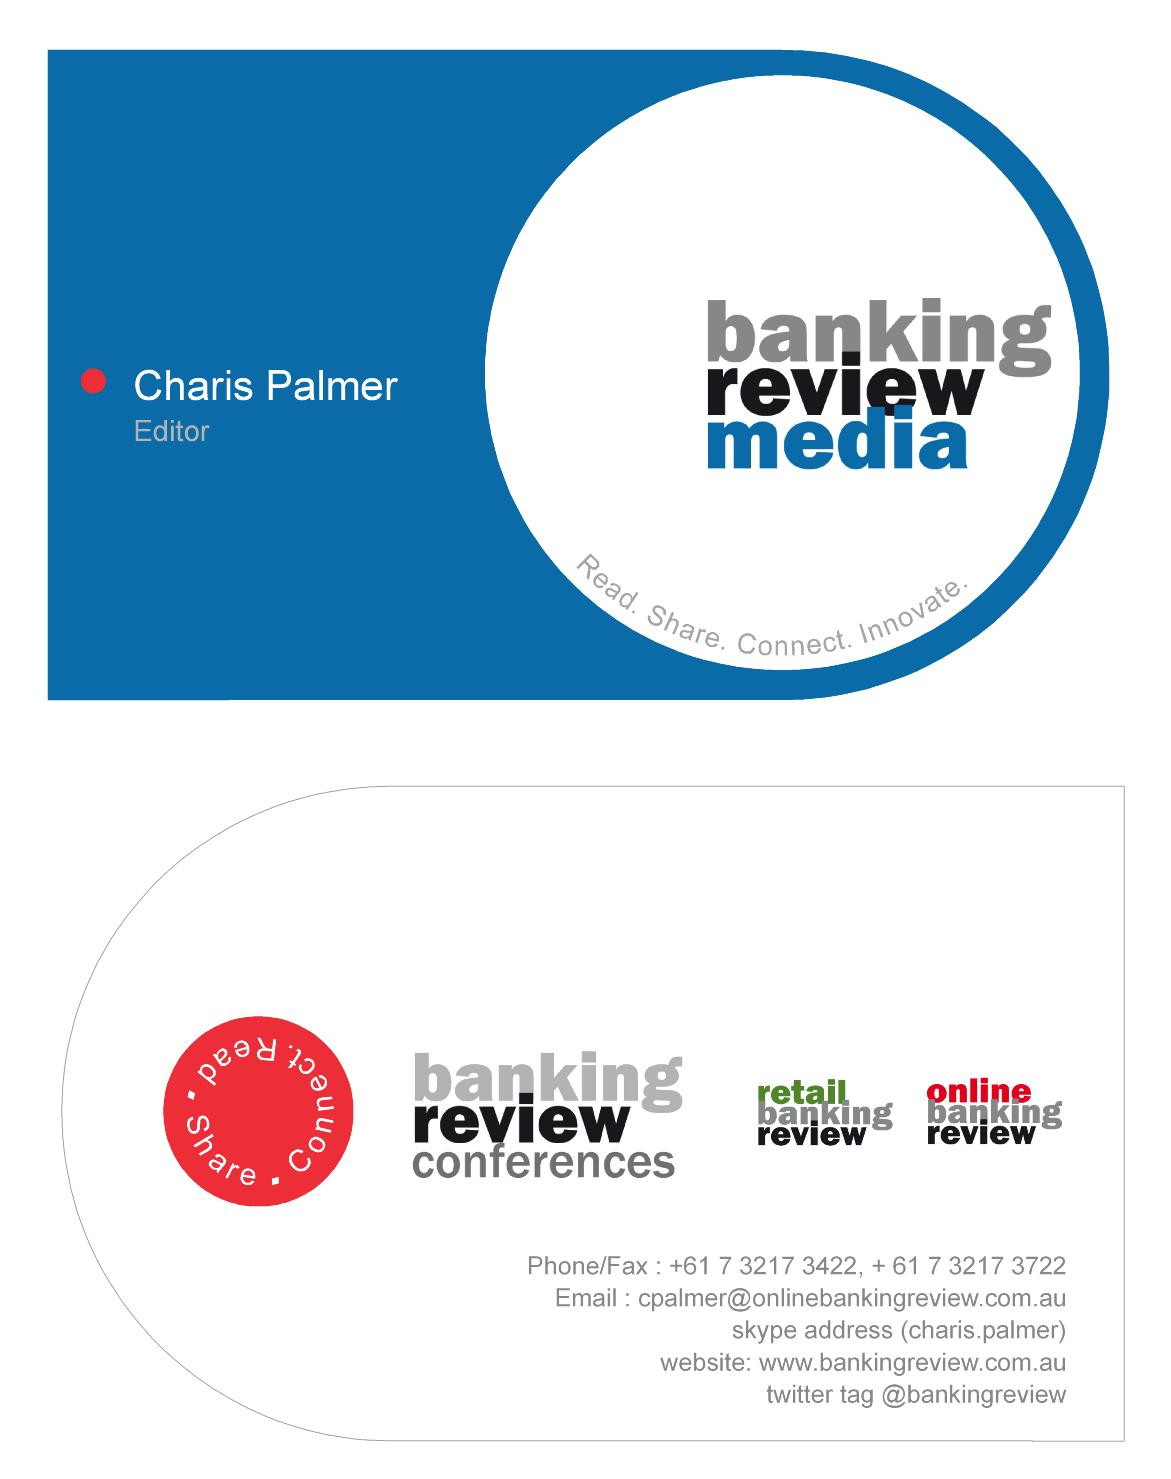 Overview designer manufacturer media reviews - Business Card Design By Ng Kia Hui For Business Card Design For Niche B2b Media Co